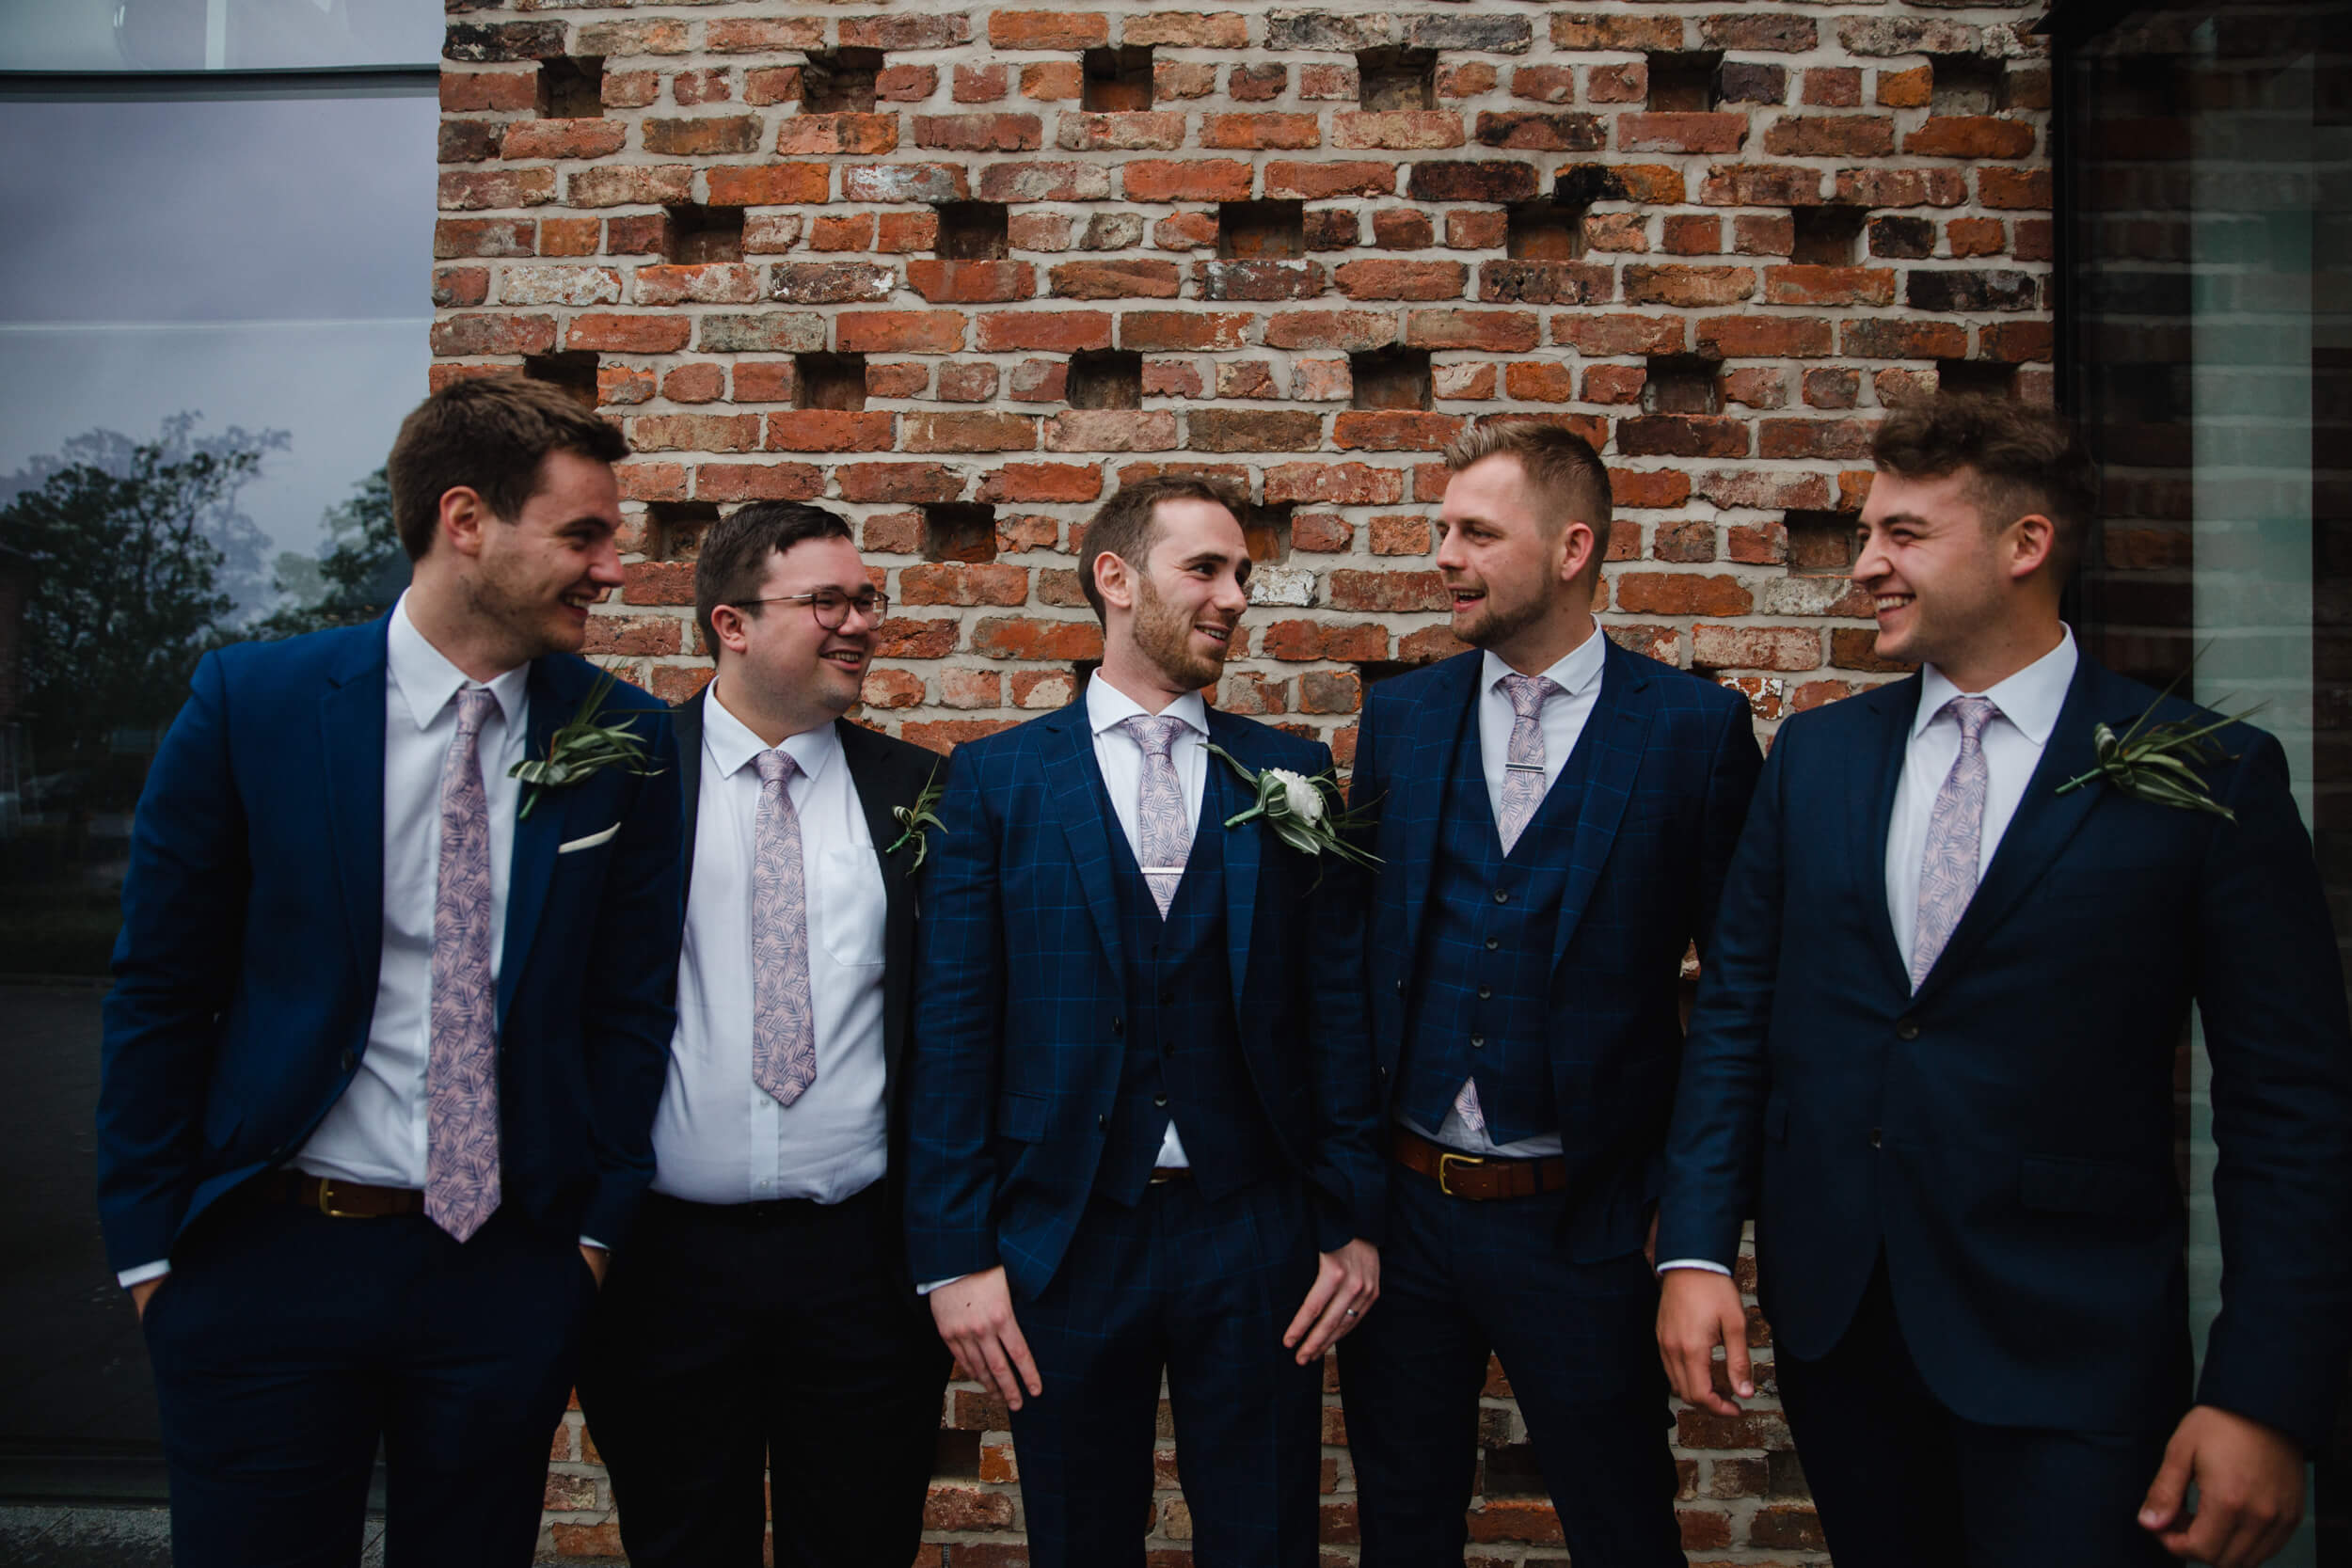 groomsmen in suits pose for group photograph in front of guardhouse